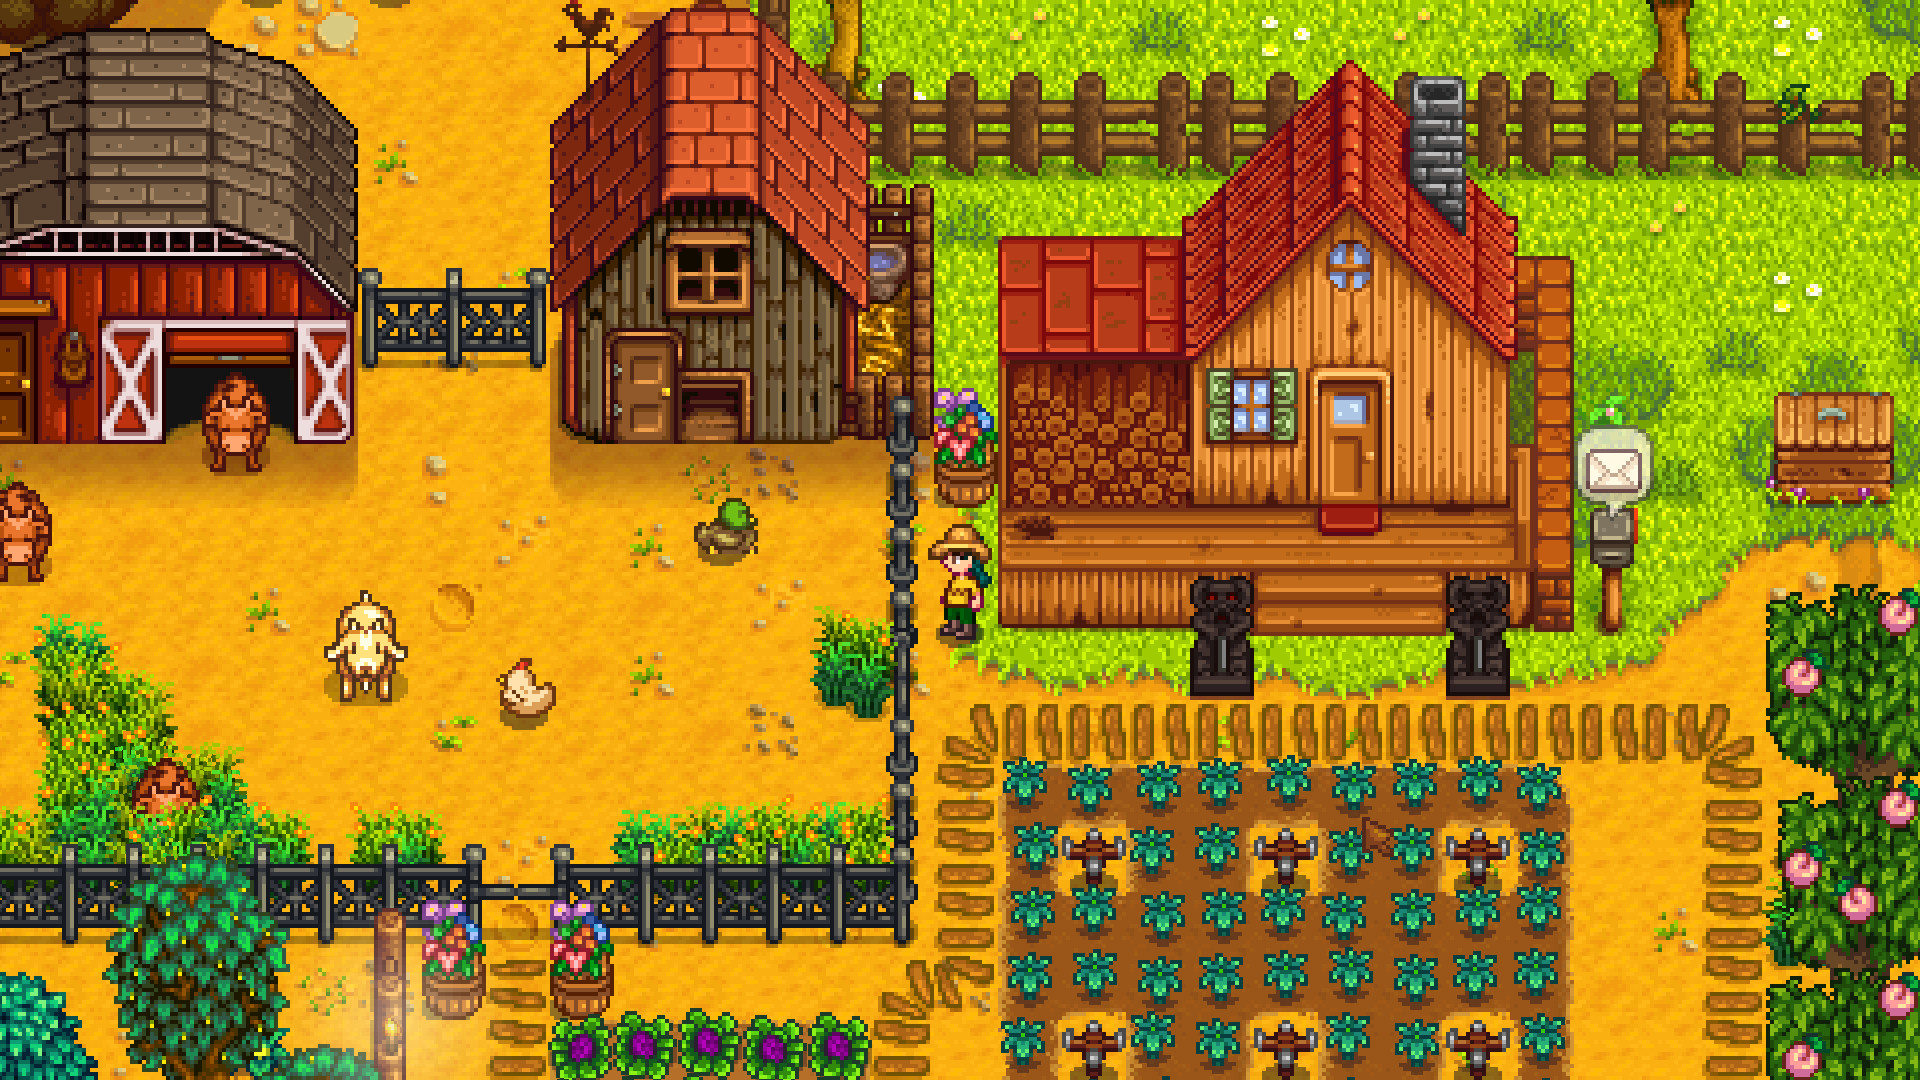 A really lovely, neat farm in Stardew Valley, with a field of greens growing next to peach trees, and a yard with cows, goats and hens.